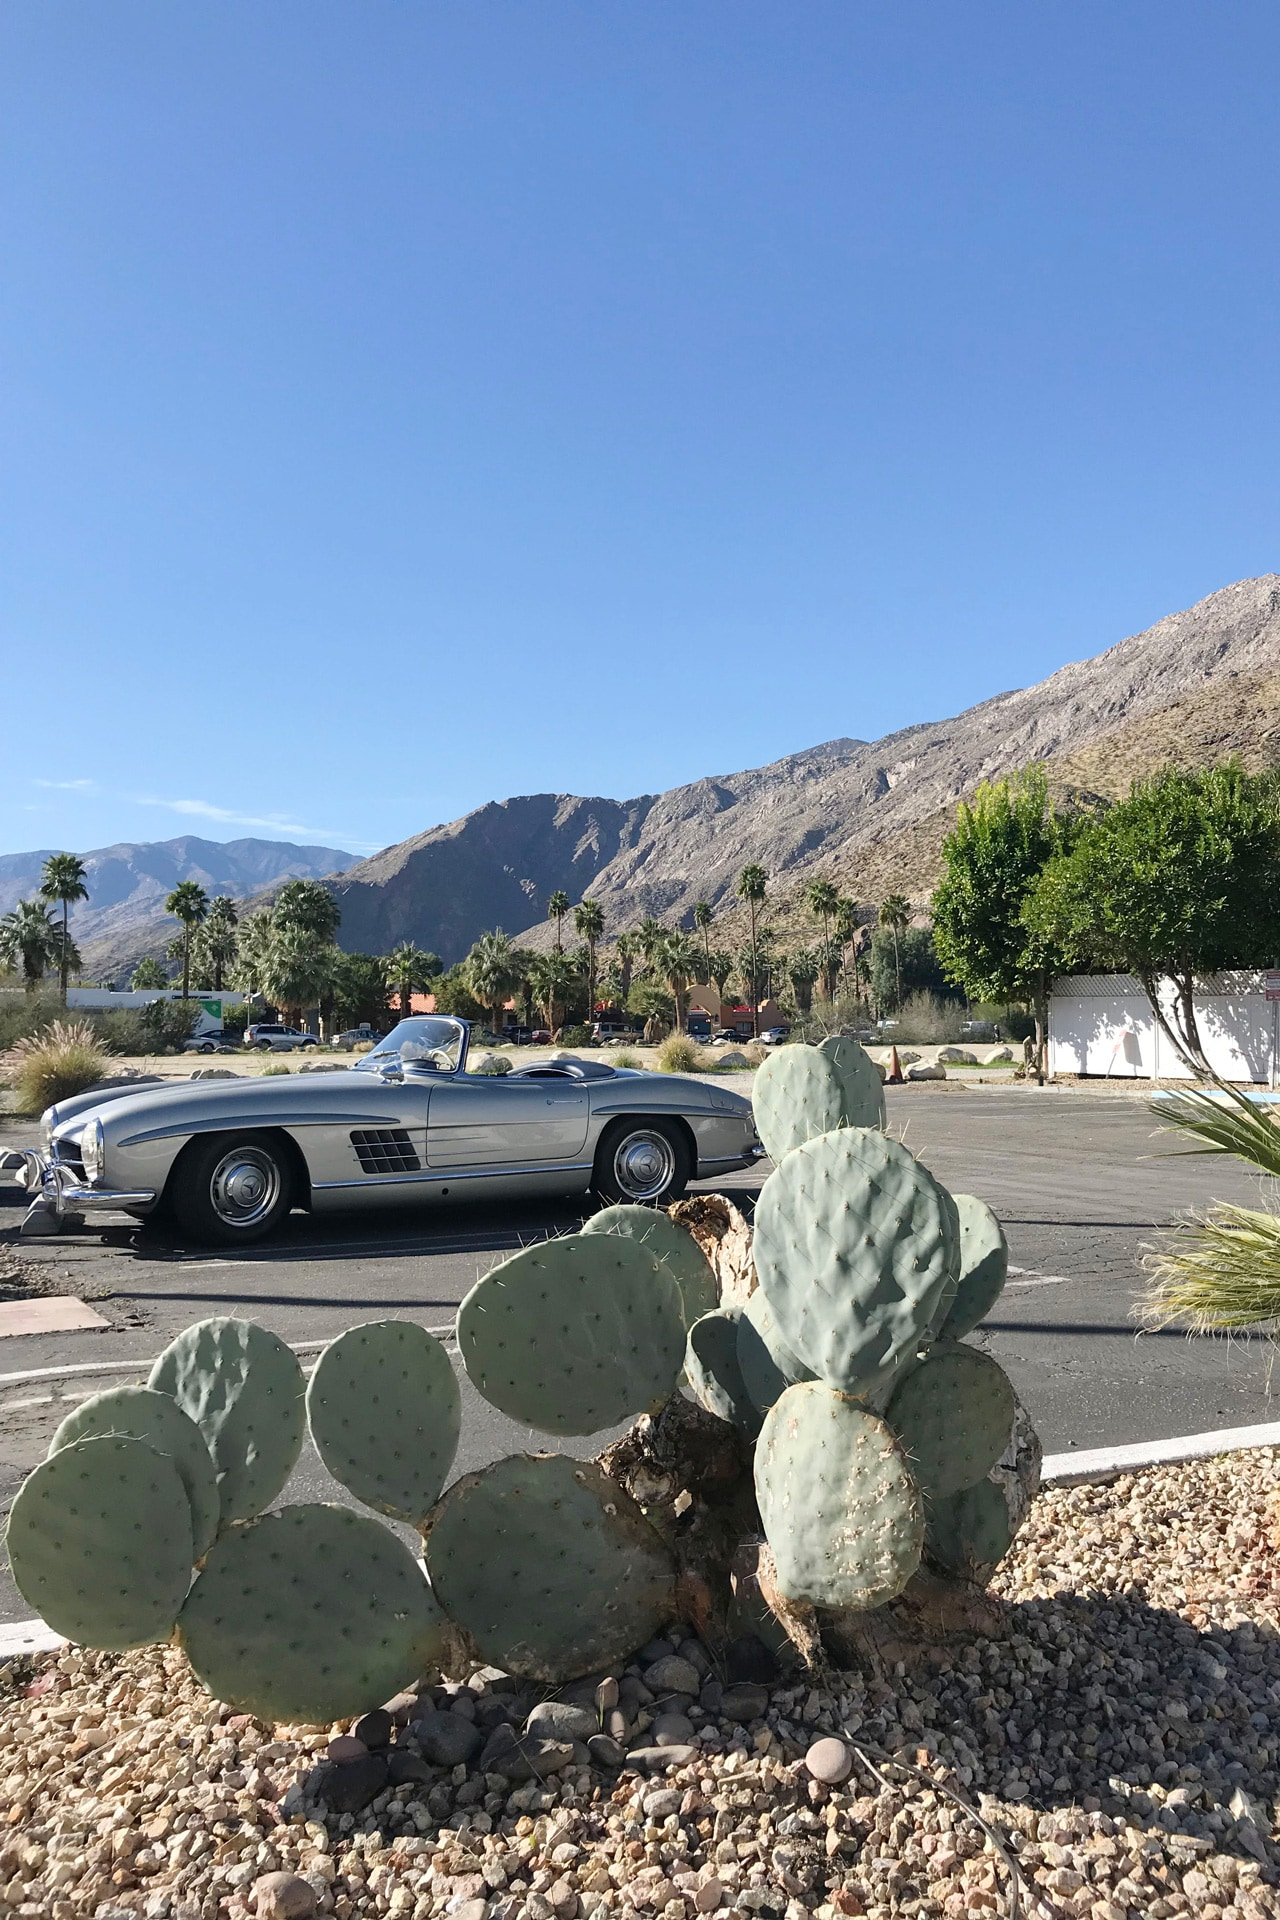 Emma Elizabeth shares her highlights from Modernism Week 2018